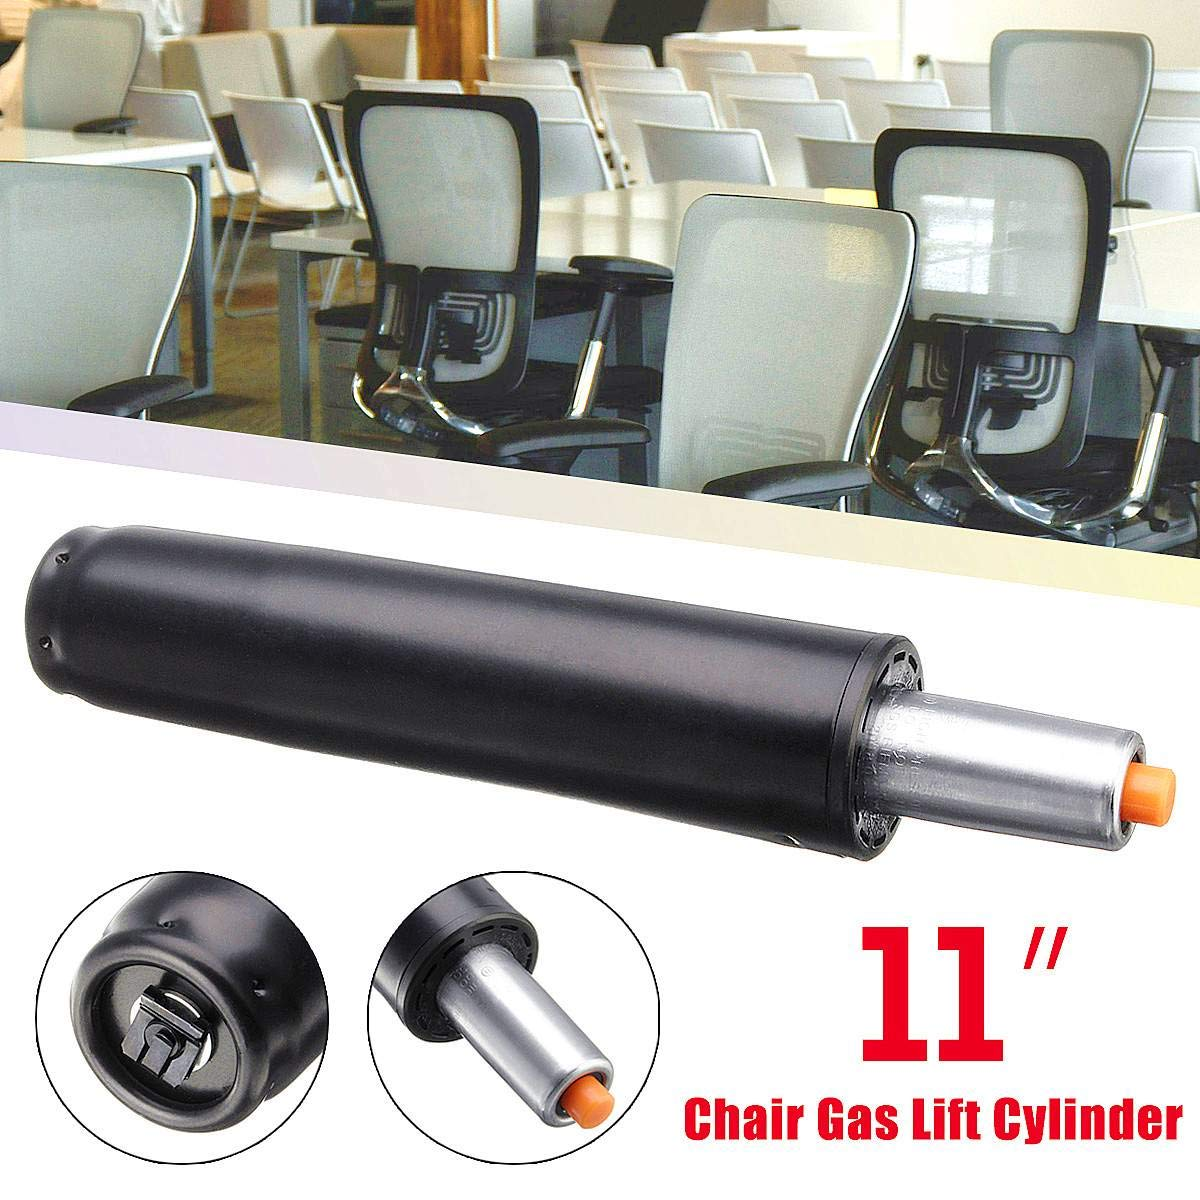 Fevas Heavy 11'' Pneumatic Rod Gas Lift Cylinder Chair Replacement Accessories for General Office Chairs Bar Computer Chairs